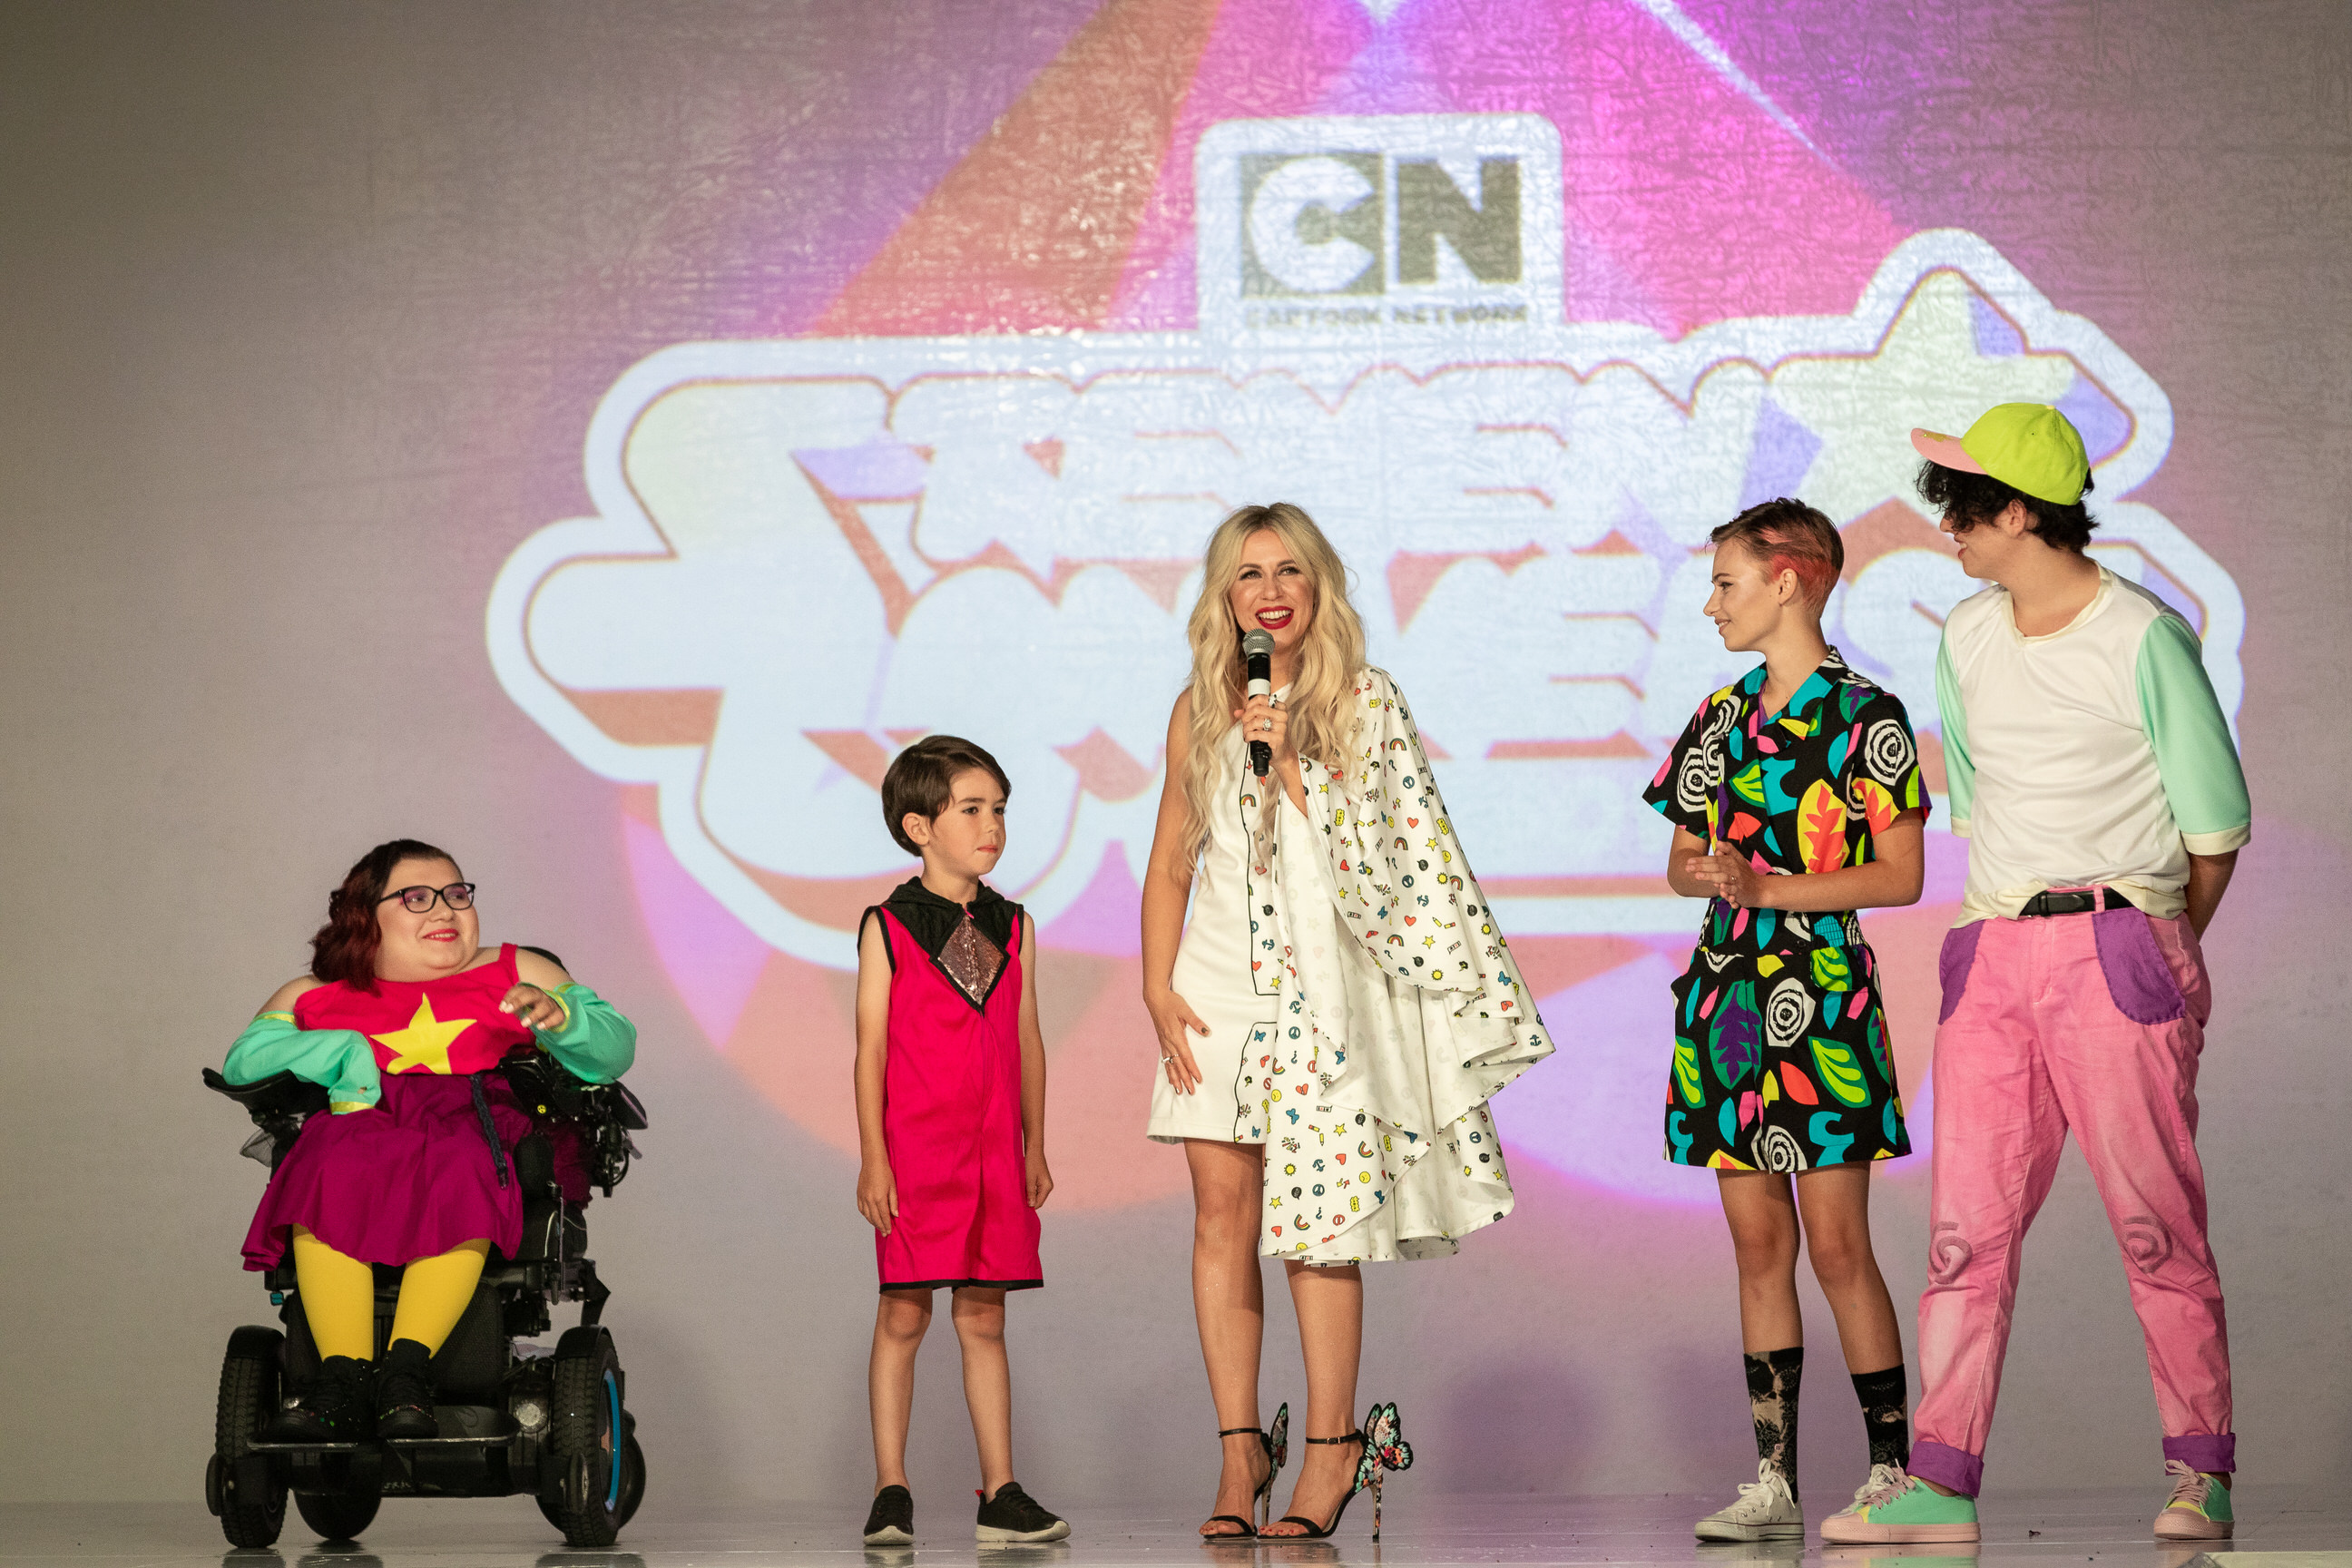 Junior fashion designers from Her Universe at San Diego Comic-Con 2019